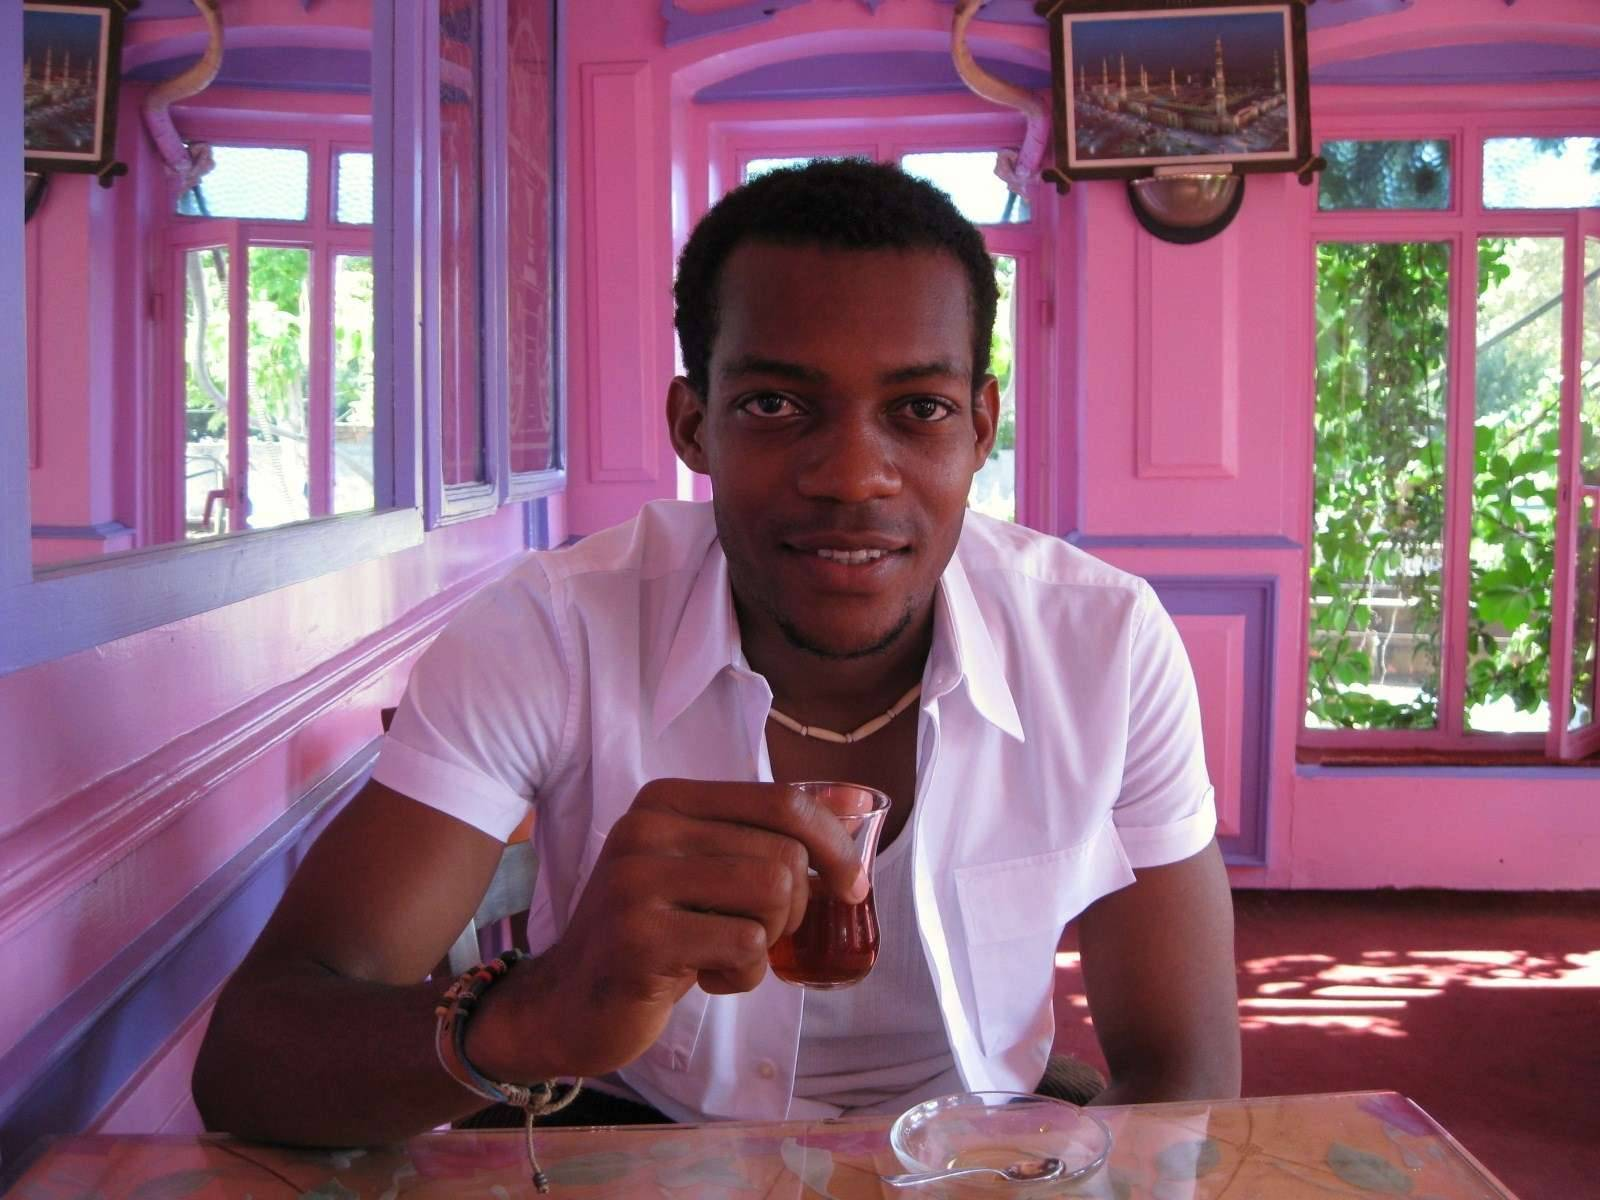 istanbul black girls personals Istanbul's best 100% free black dating site hook up with sexy black singles in istanbul, istanbul, with our free dating personal ads mingle2com is full of hot black guys and girls in istanbul looking for love, sex, friendship, or a friday night date.